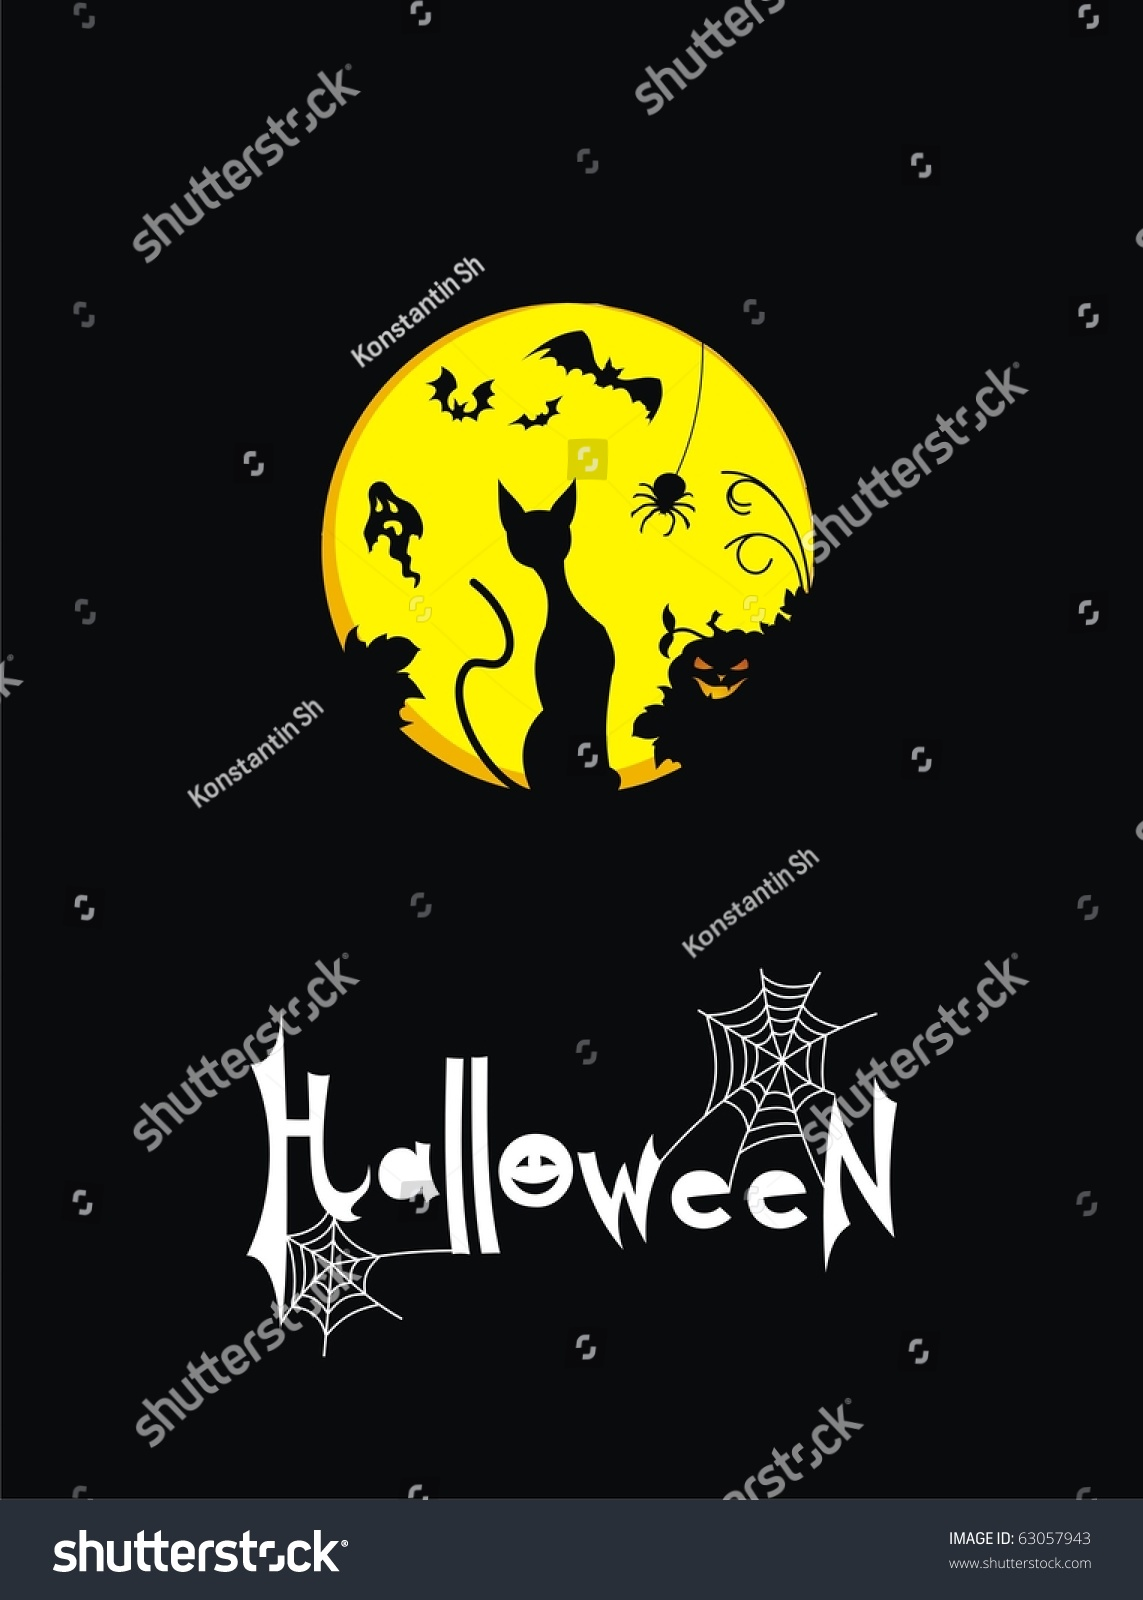 Greeting holiday halloween stock vector 63057943 shutterstock greeting for the holiday halloween kristyandbryce Images